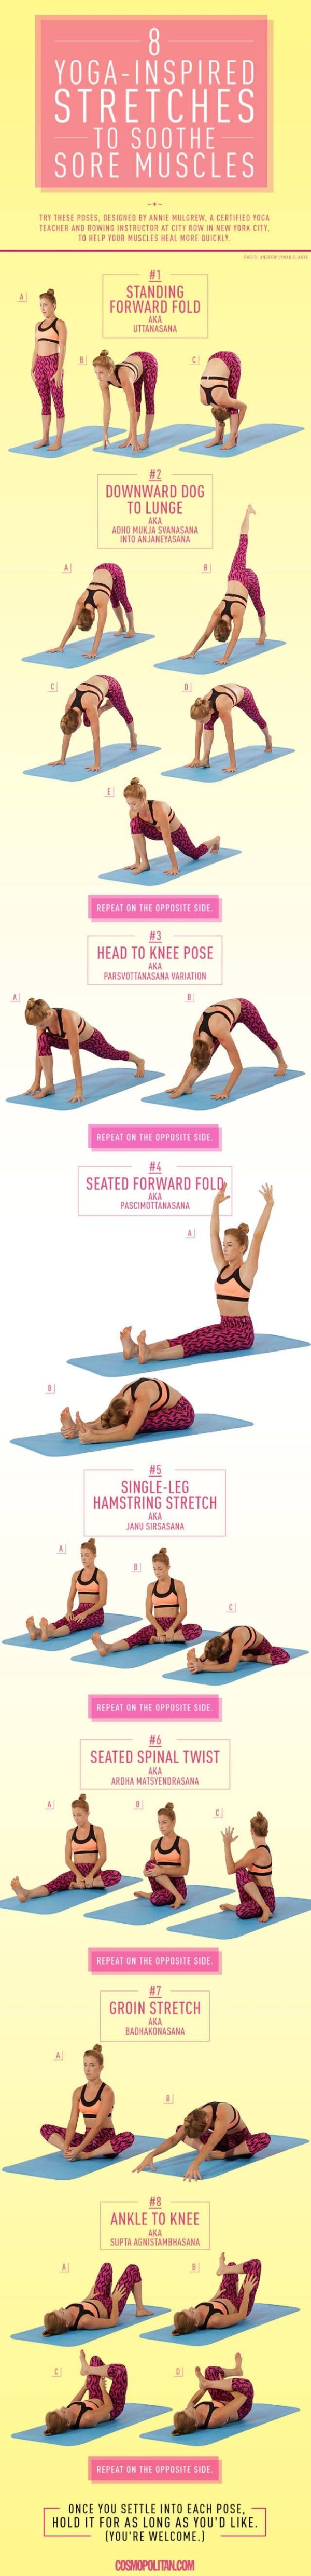 Yoga Stretches for Sore Muscles by cosmopolitan: When you work out, your muscles contract and shorten, which can leave you feeling stiff. Stretching increases blood flow to the muscles to relieve this stiffness, lengthen muscles, and improve your flexibility for a greater range of motion (and lower risk of injury) the next time you work out... #Yoga_Stretches #Sore_Muscles by kimmyfromtn